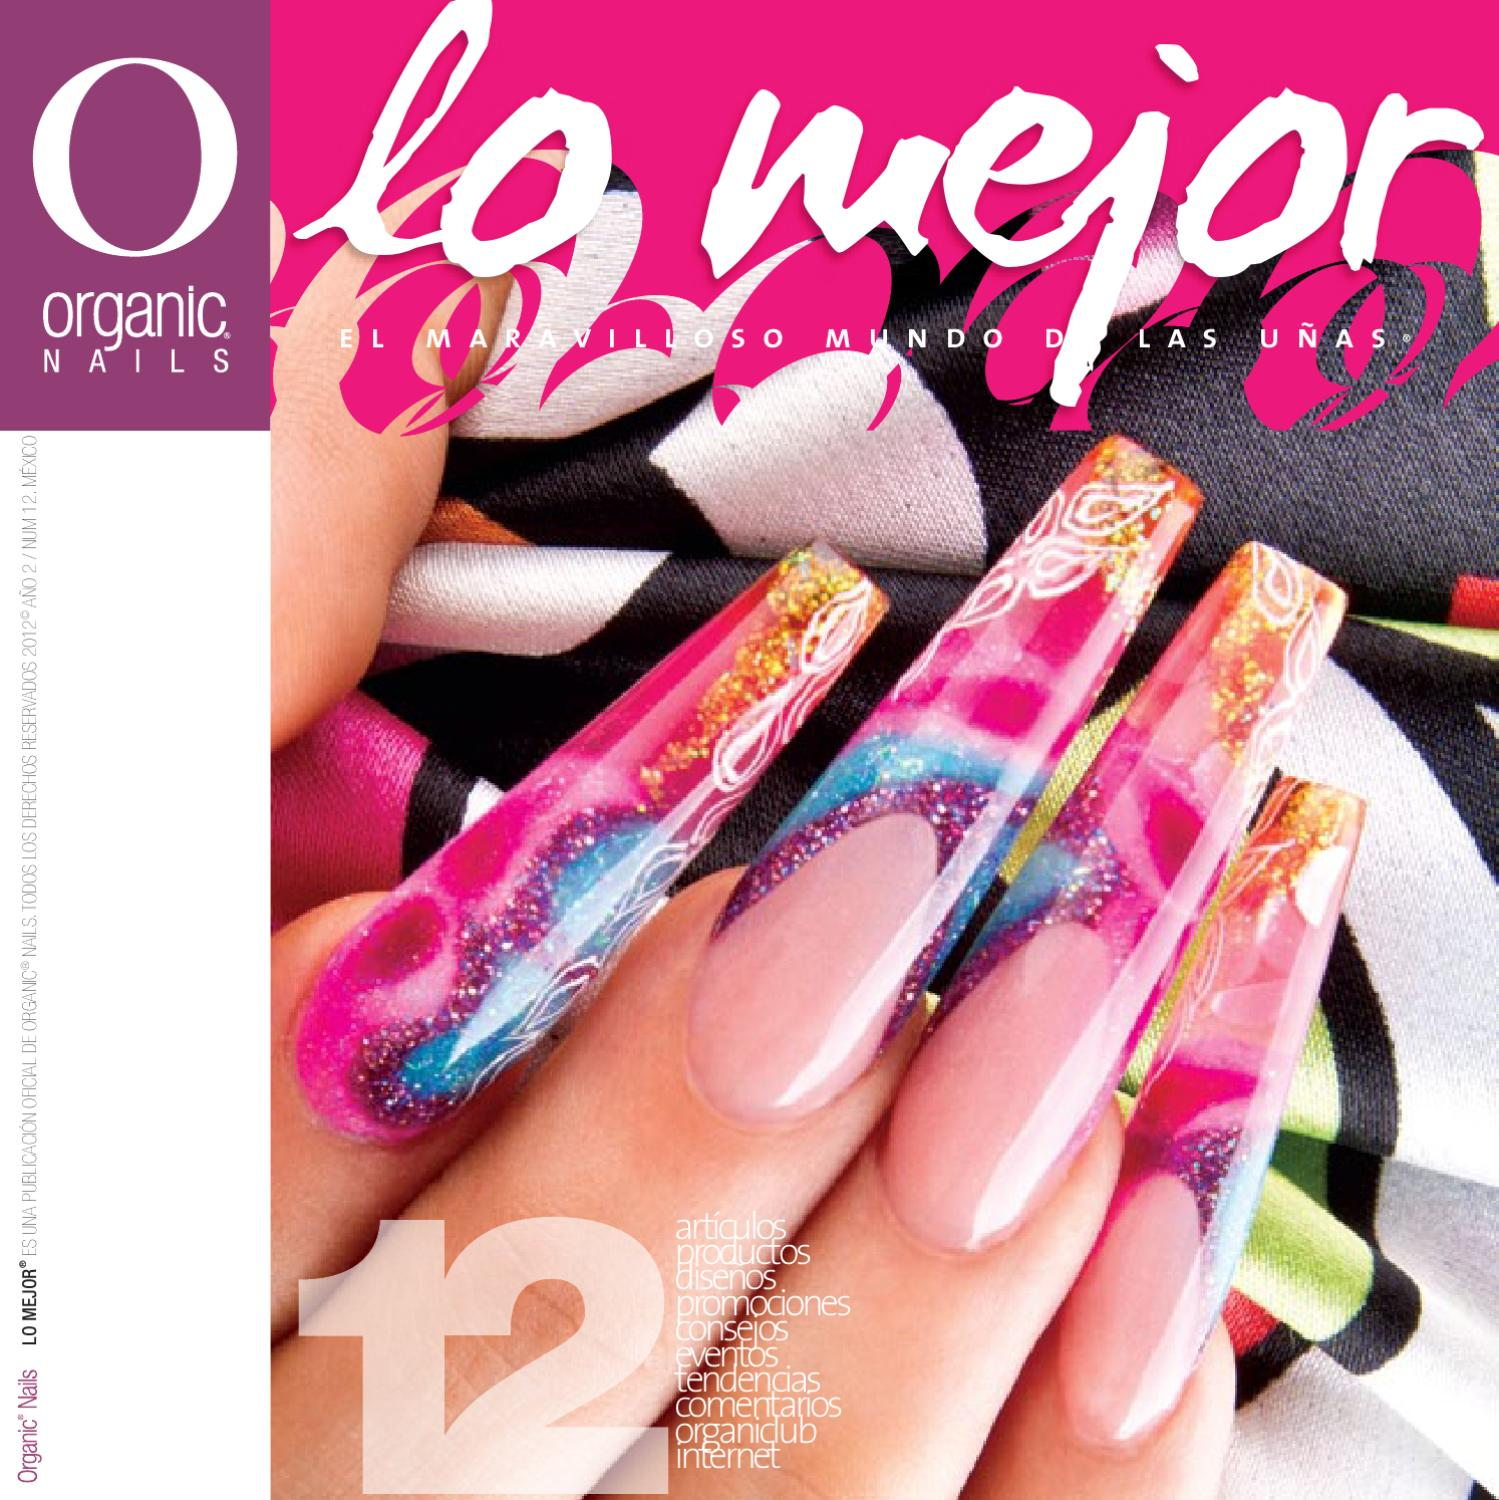 Lo Mejor 12 / Organic® Nails by Organic Nails® - issuu